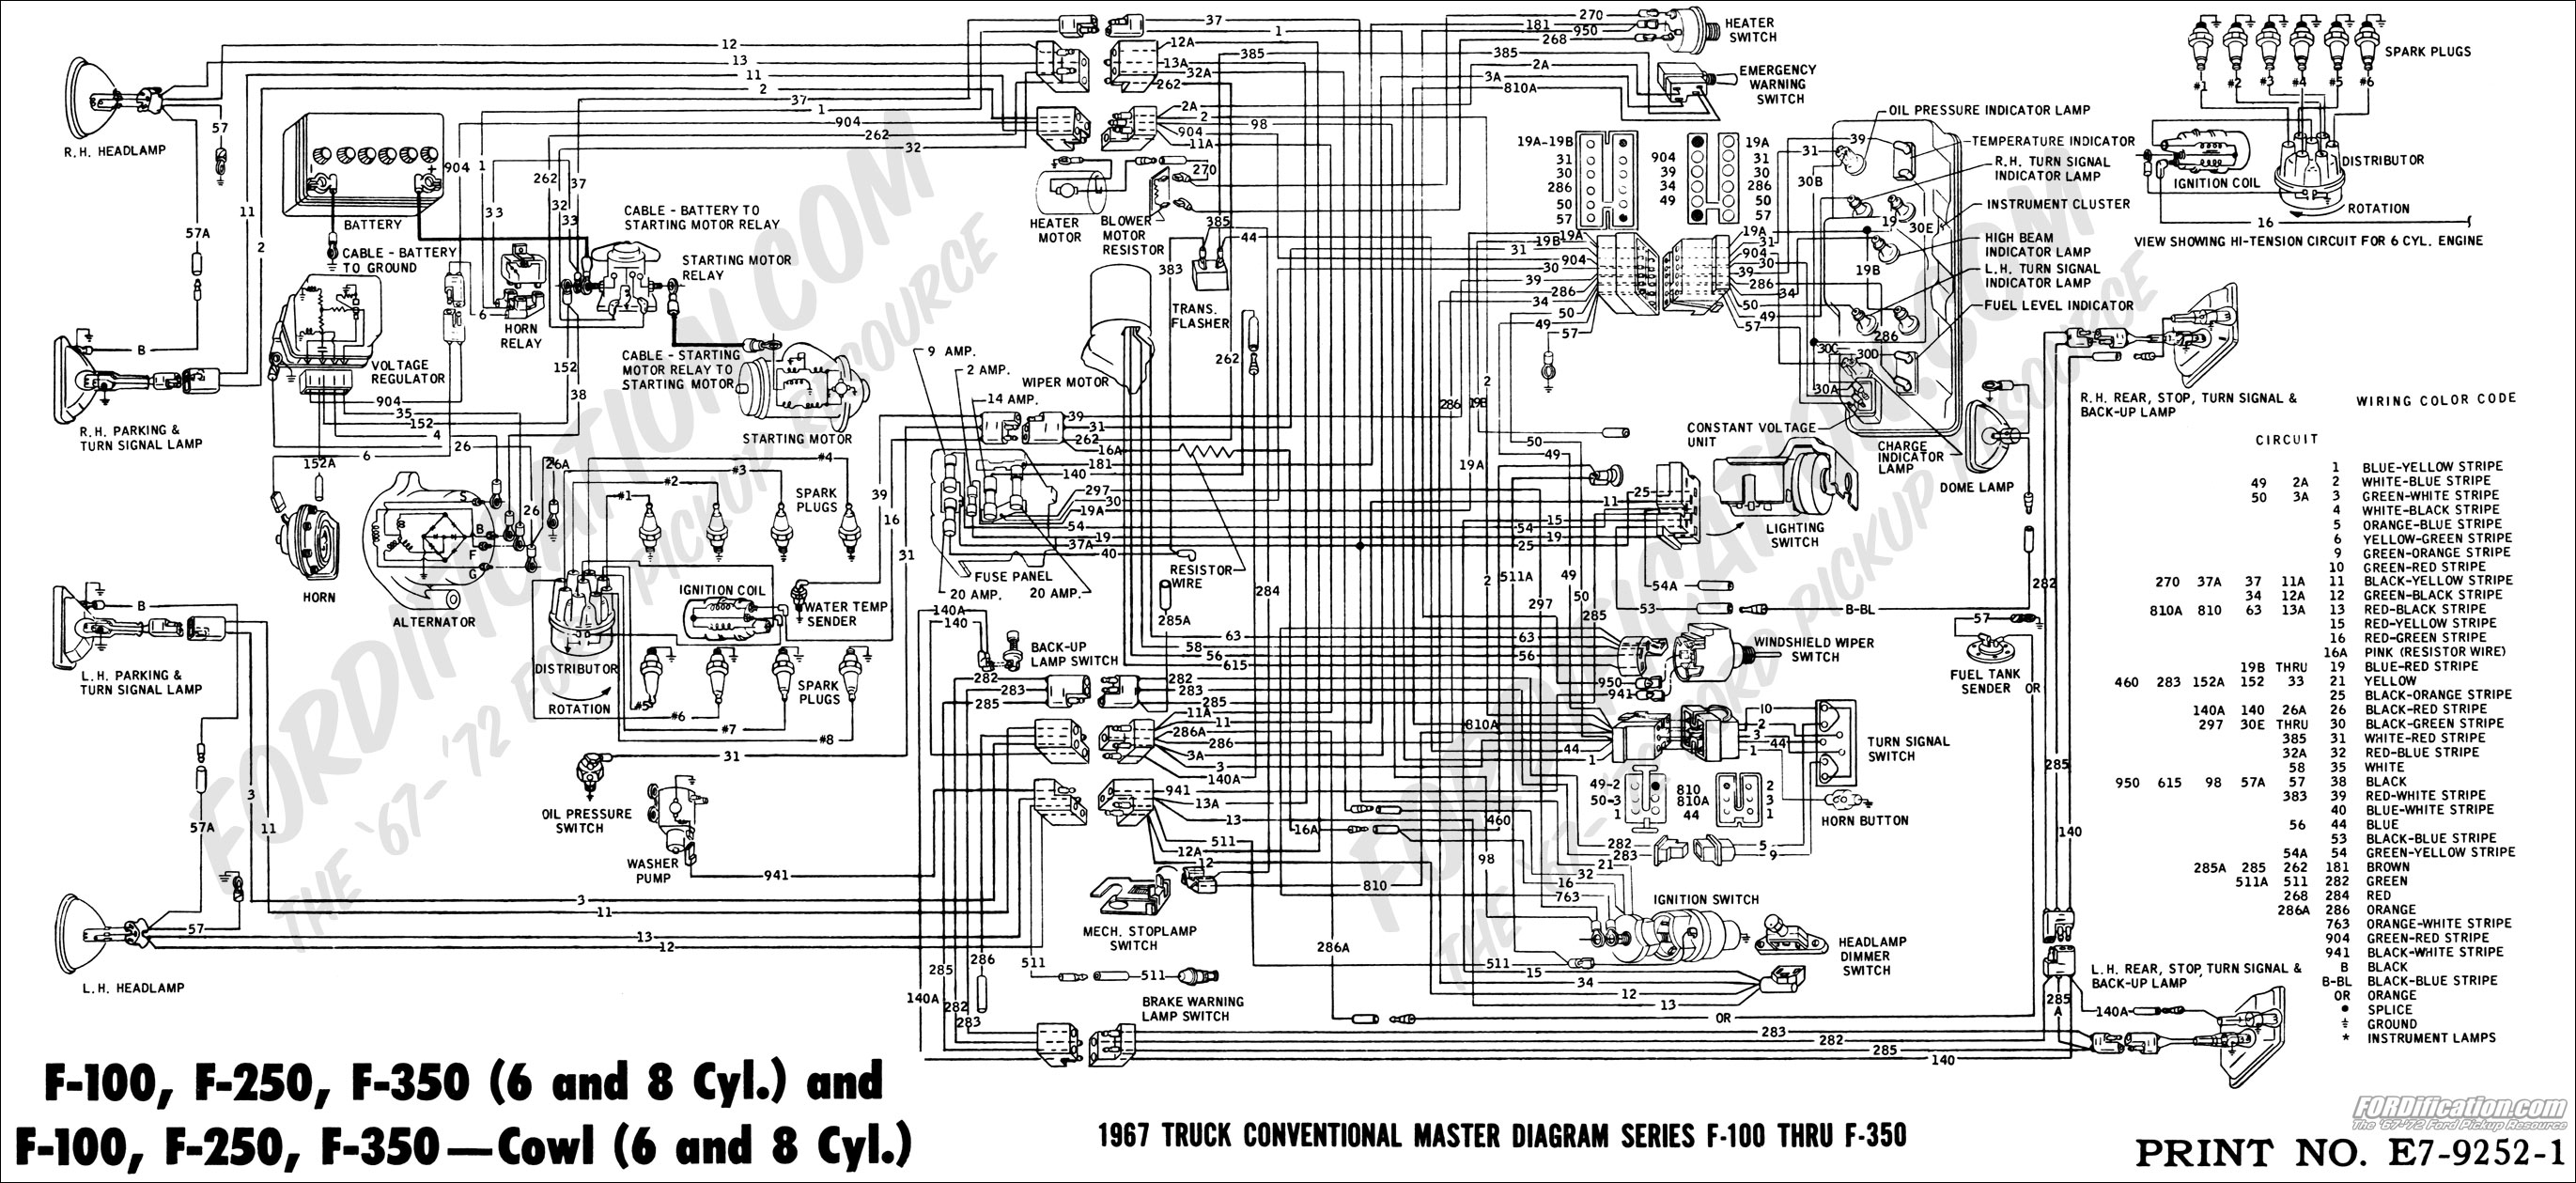 67masterdiagram ford truck technical drawings and schematics section h wiring 94 f150 wiring diagram at bayanpartner.co